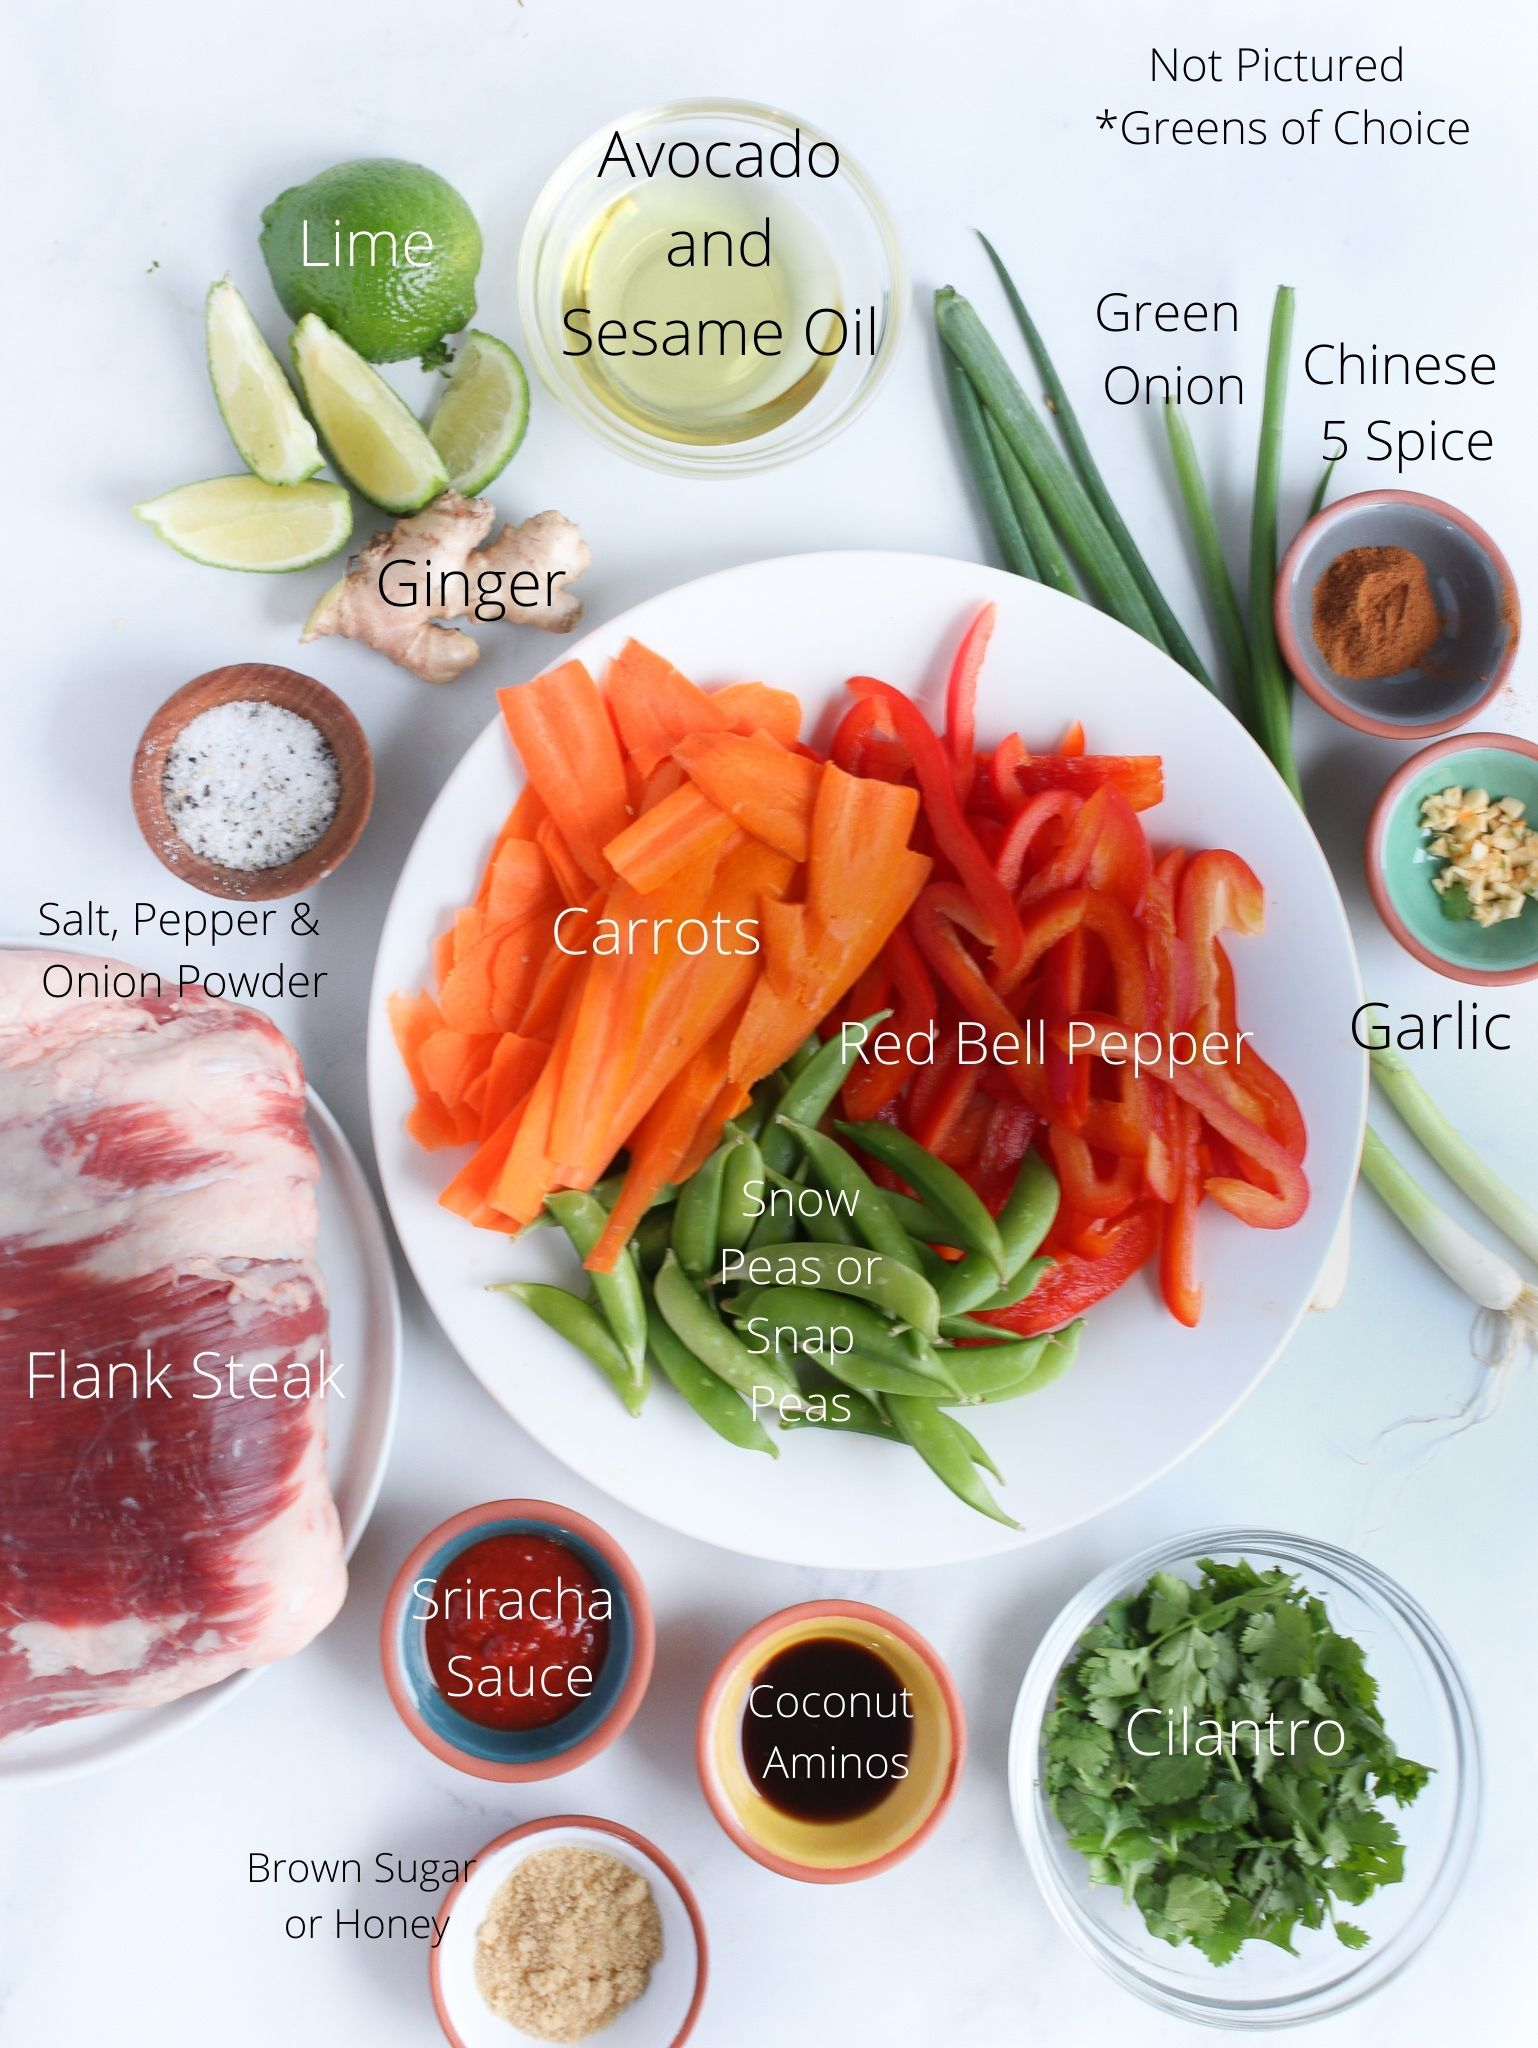 Asian Steak Salad Ingredients laid out with the flank steak, bell peppers, carrots and snap peas, green onion, cilantro and all the spices that make it delicious.